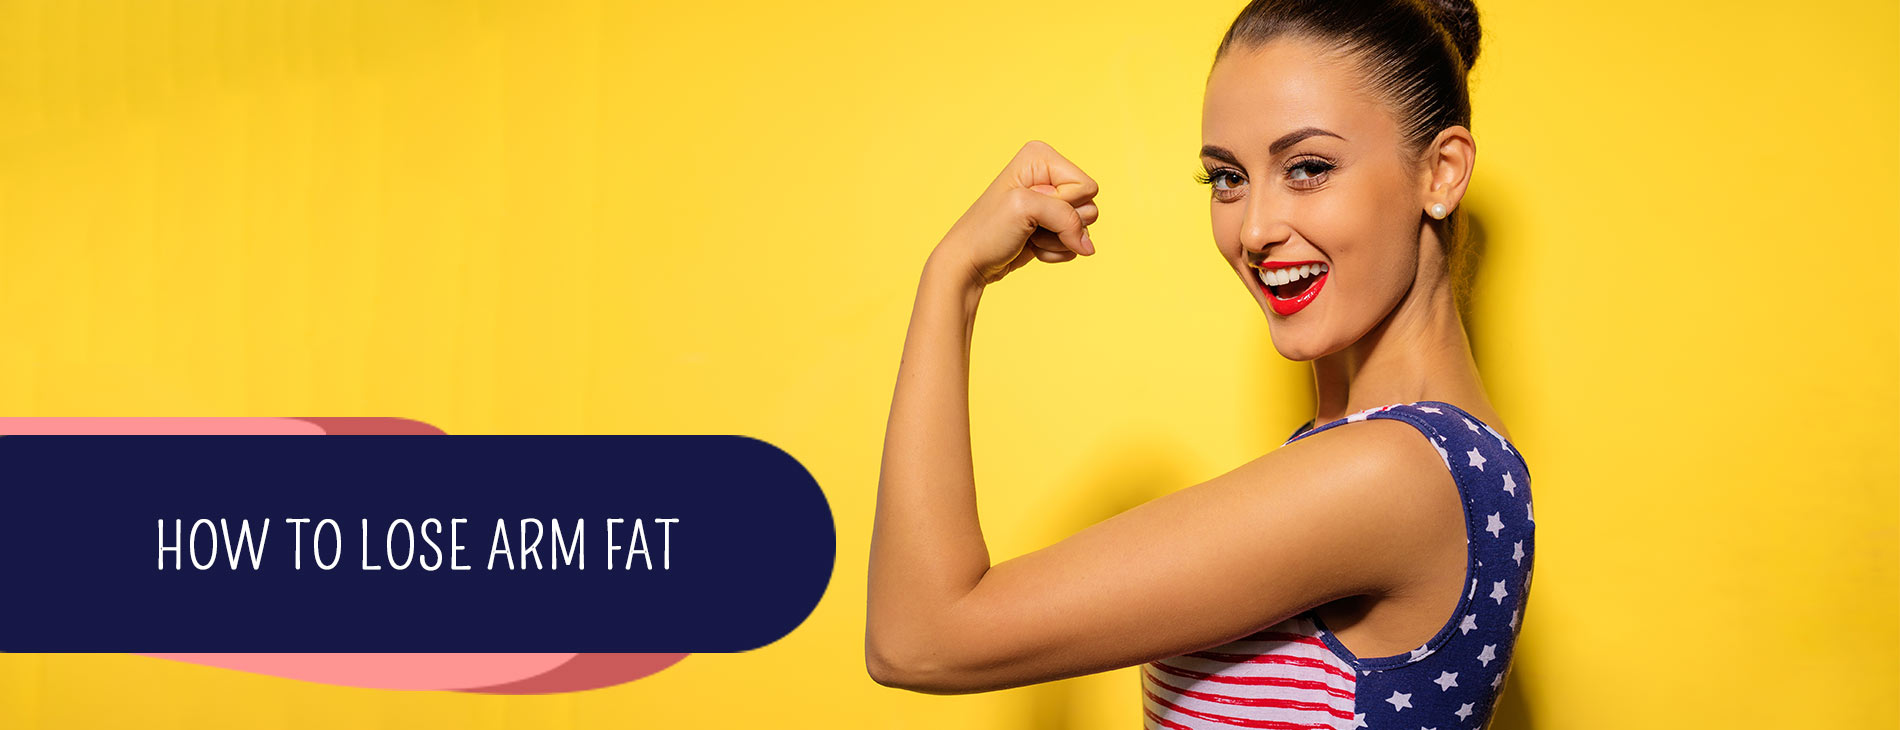 How-To-Lose-Arm-Fat